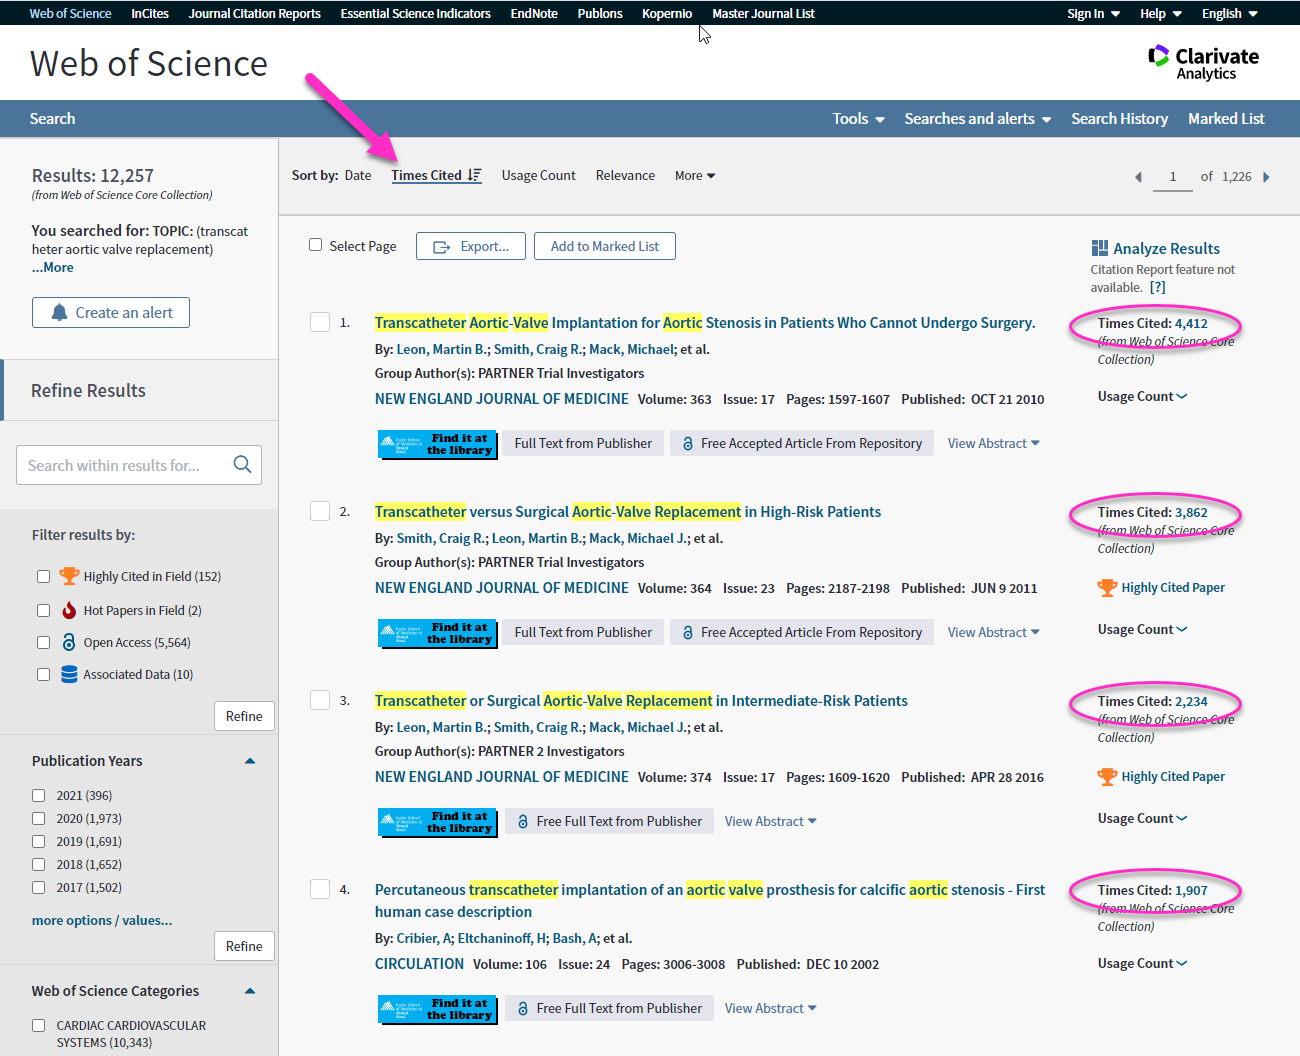 Web of Science search results page showing results sorted by times cited in descending order